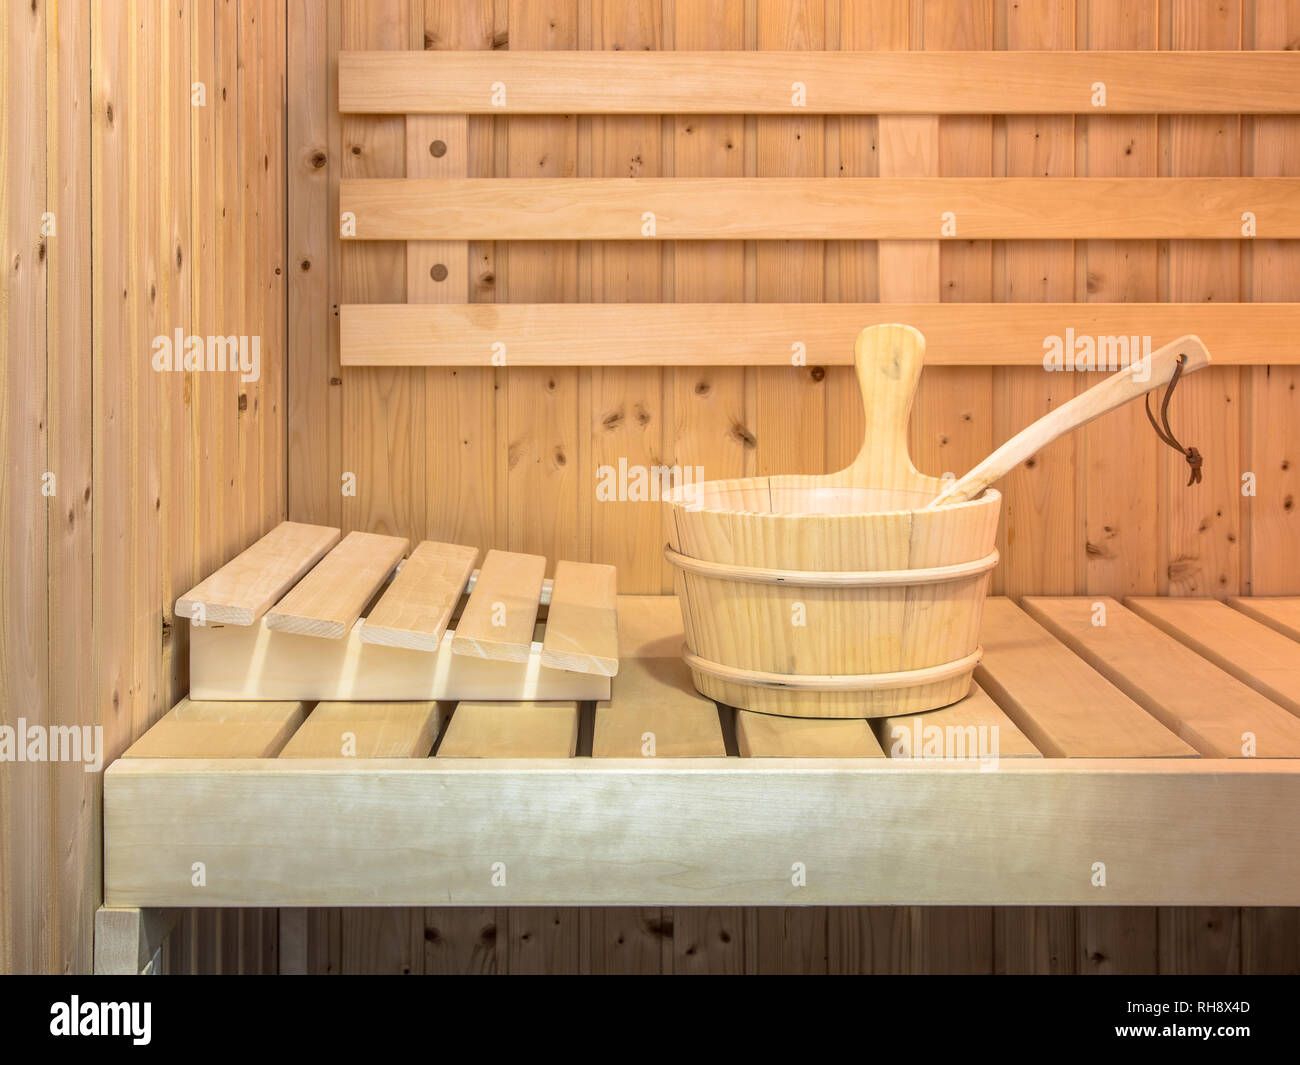 Interior of Finnish sauna with wooden bucket and seats Stock Photo